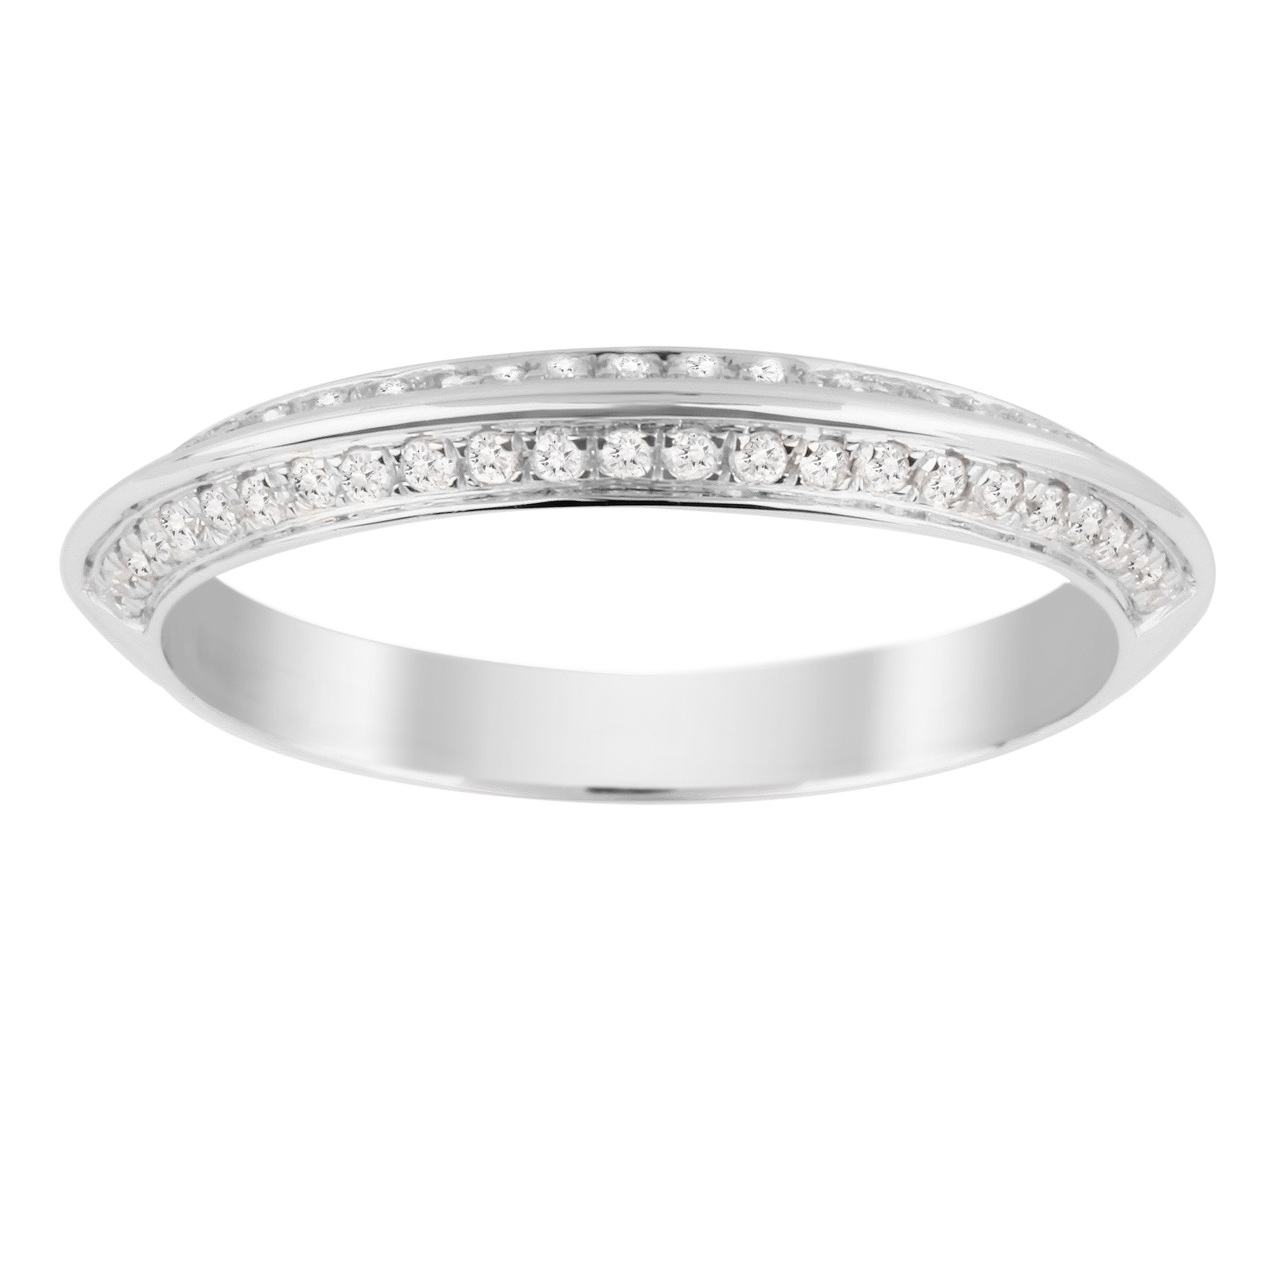 Jenny Packham Brilliant Cut 0 23 Carat Total Weight Wedding Ring